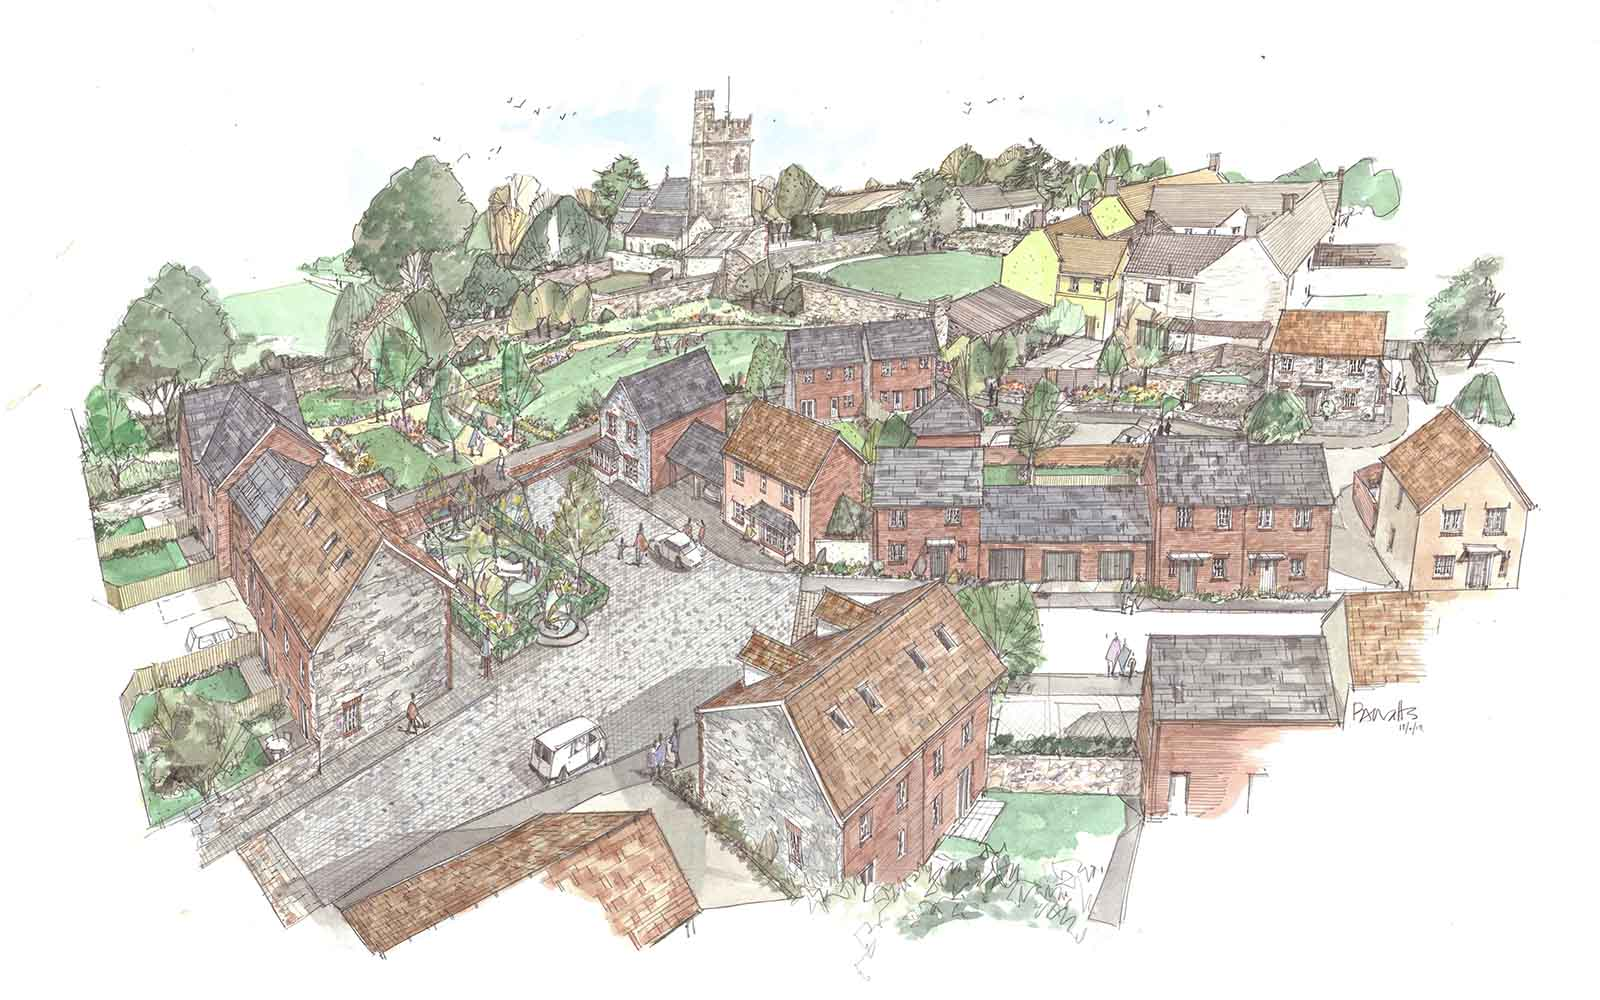 Nether Stowey. Sketch by Philip Watts